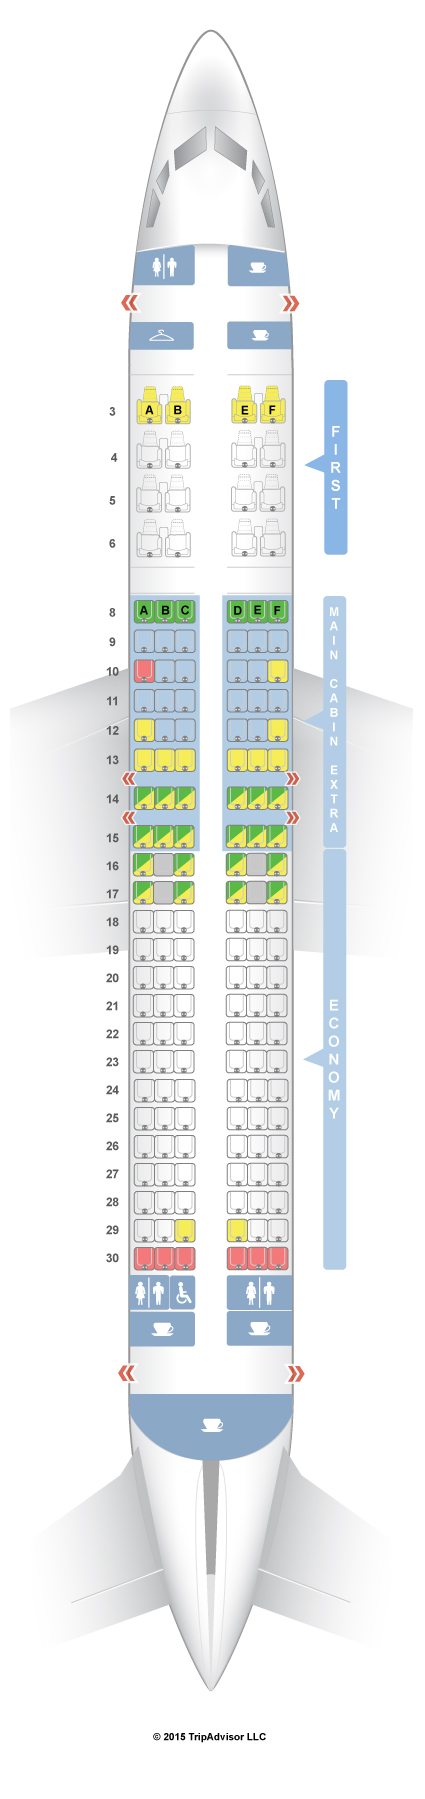 Seatguru Seat Map American Airlines Boeing 737 800 738 V1